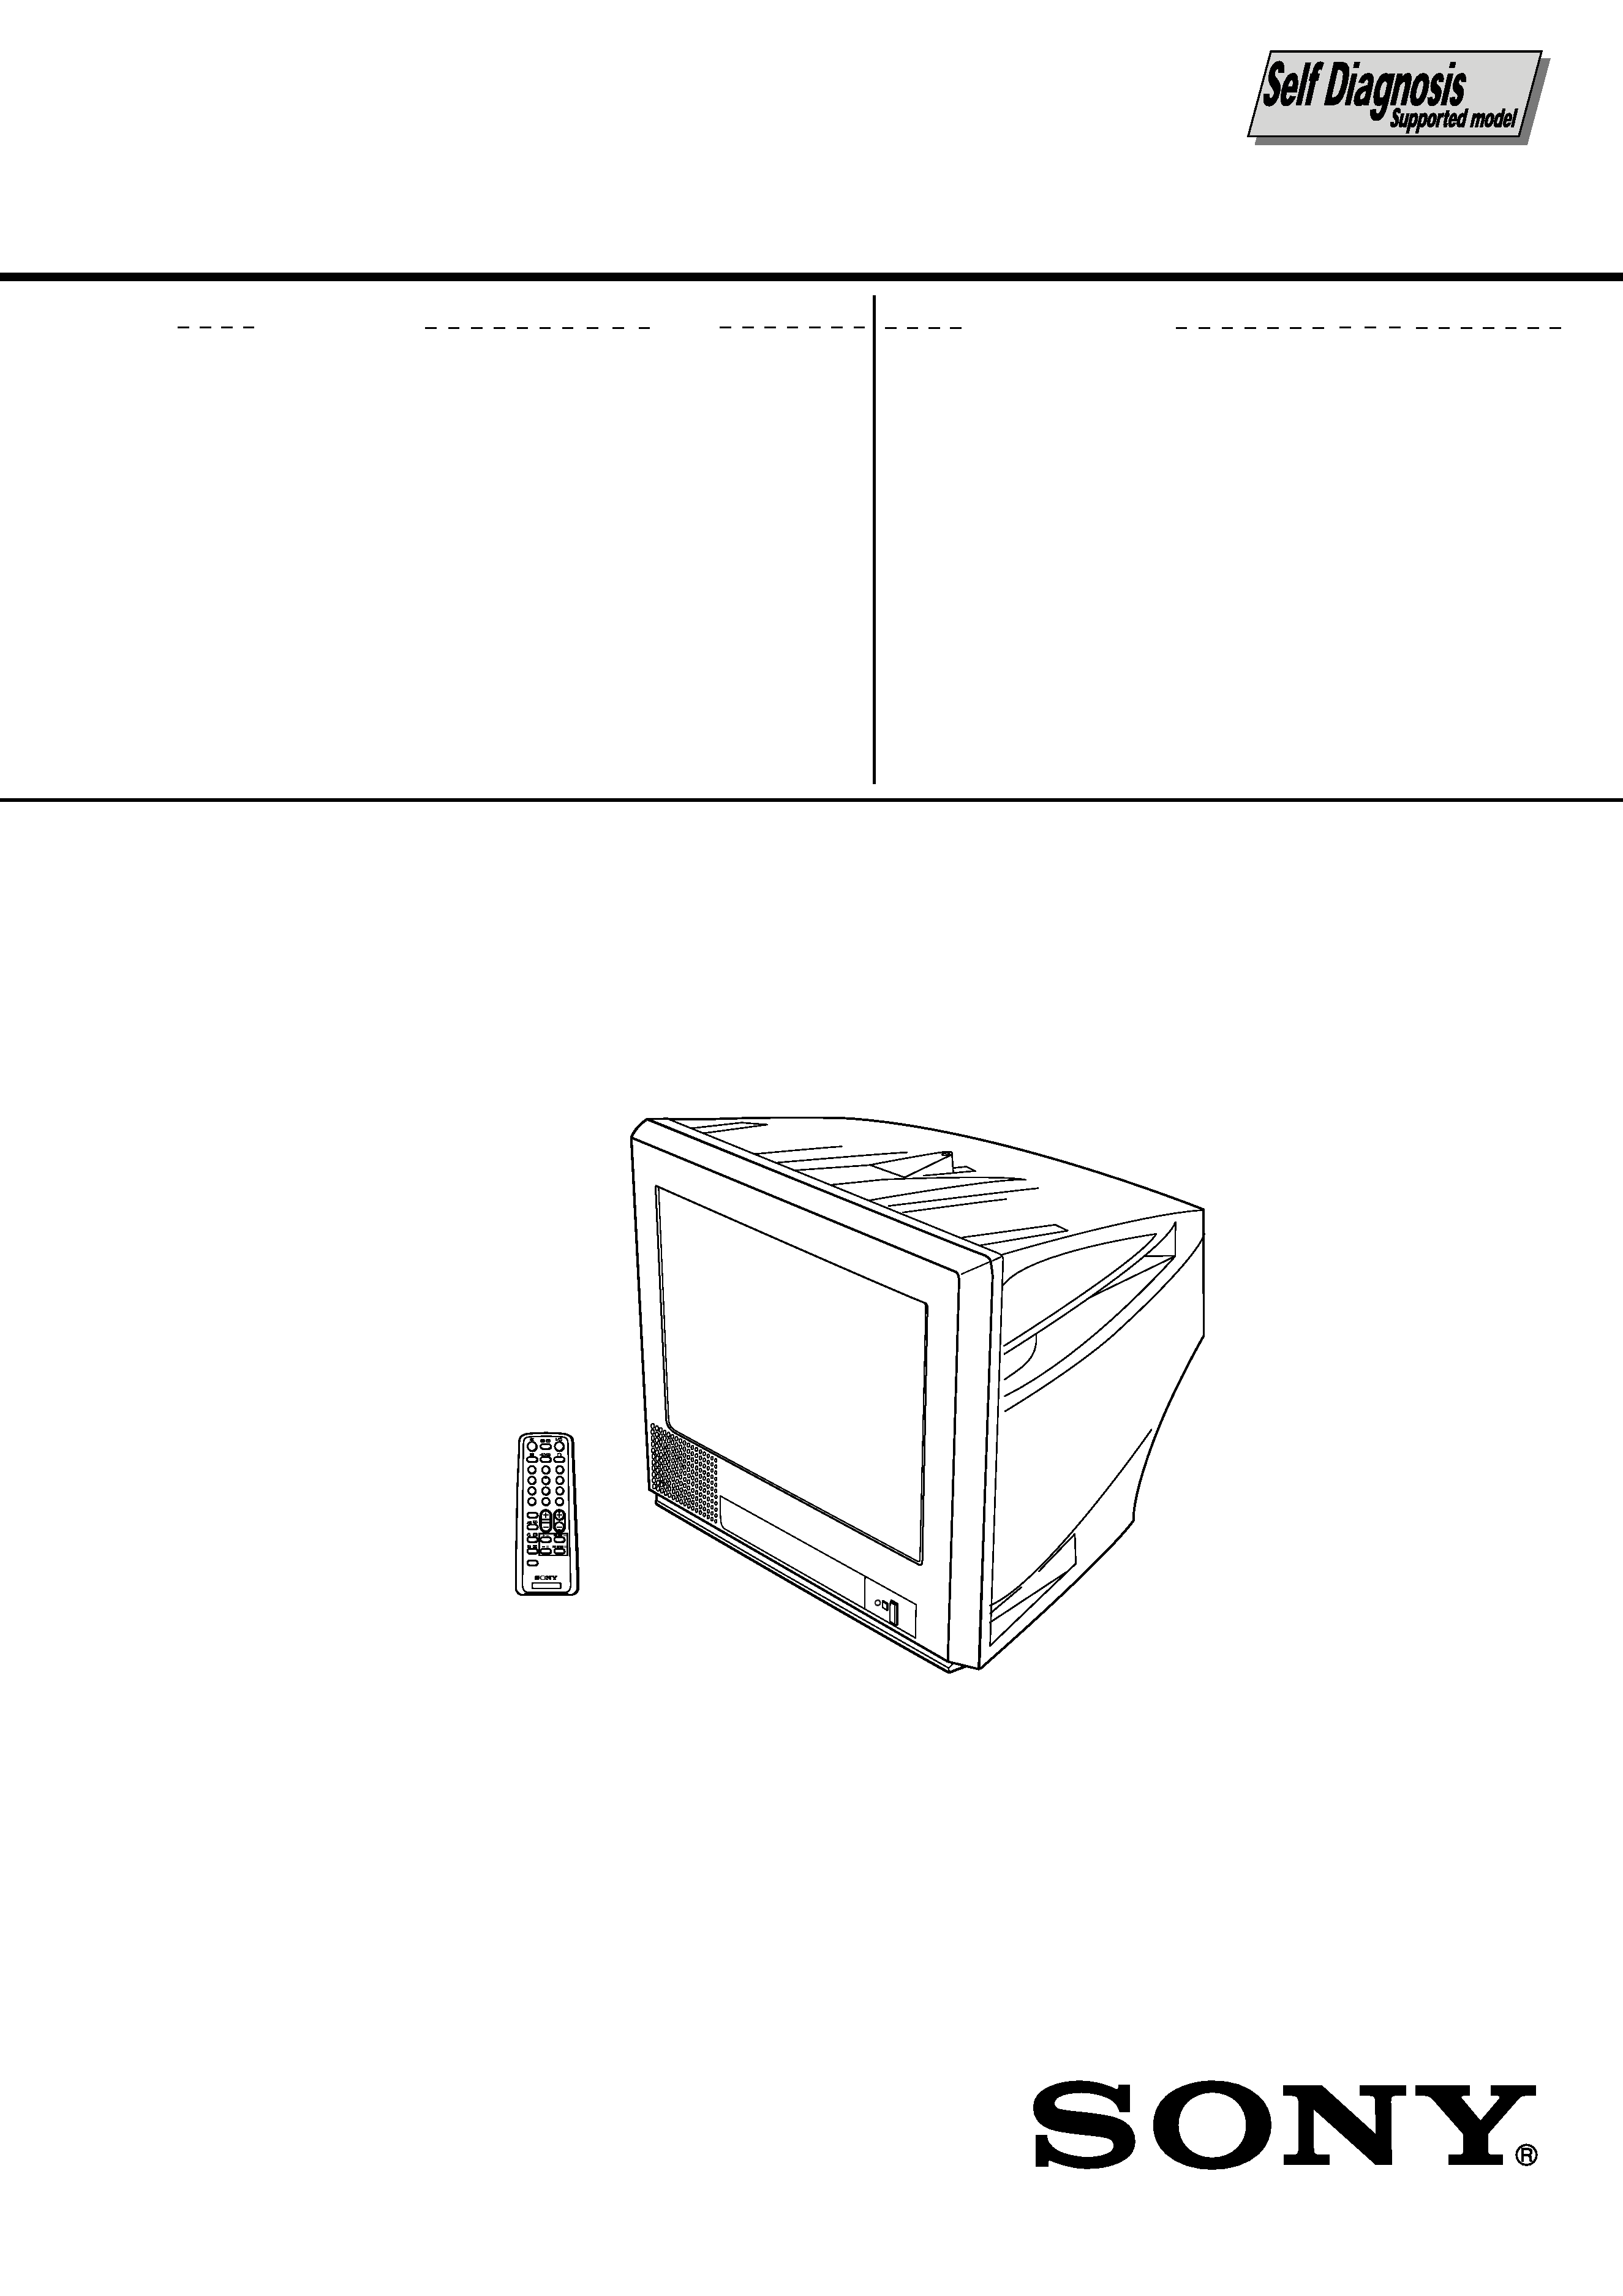 Sony Kvpg14l70 Service Manual Immediate Download Crt Screen Schematic Background Image